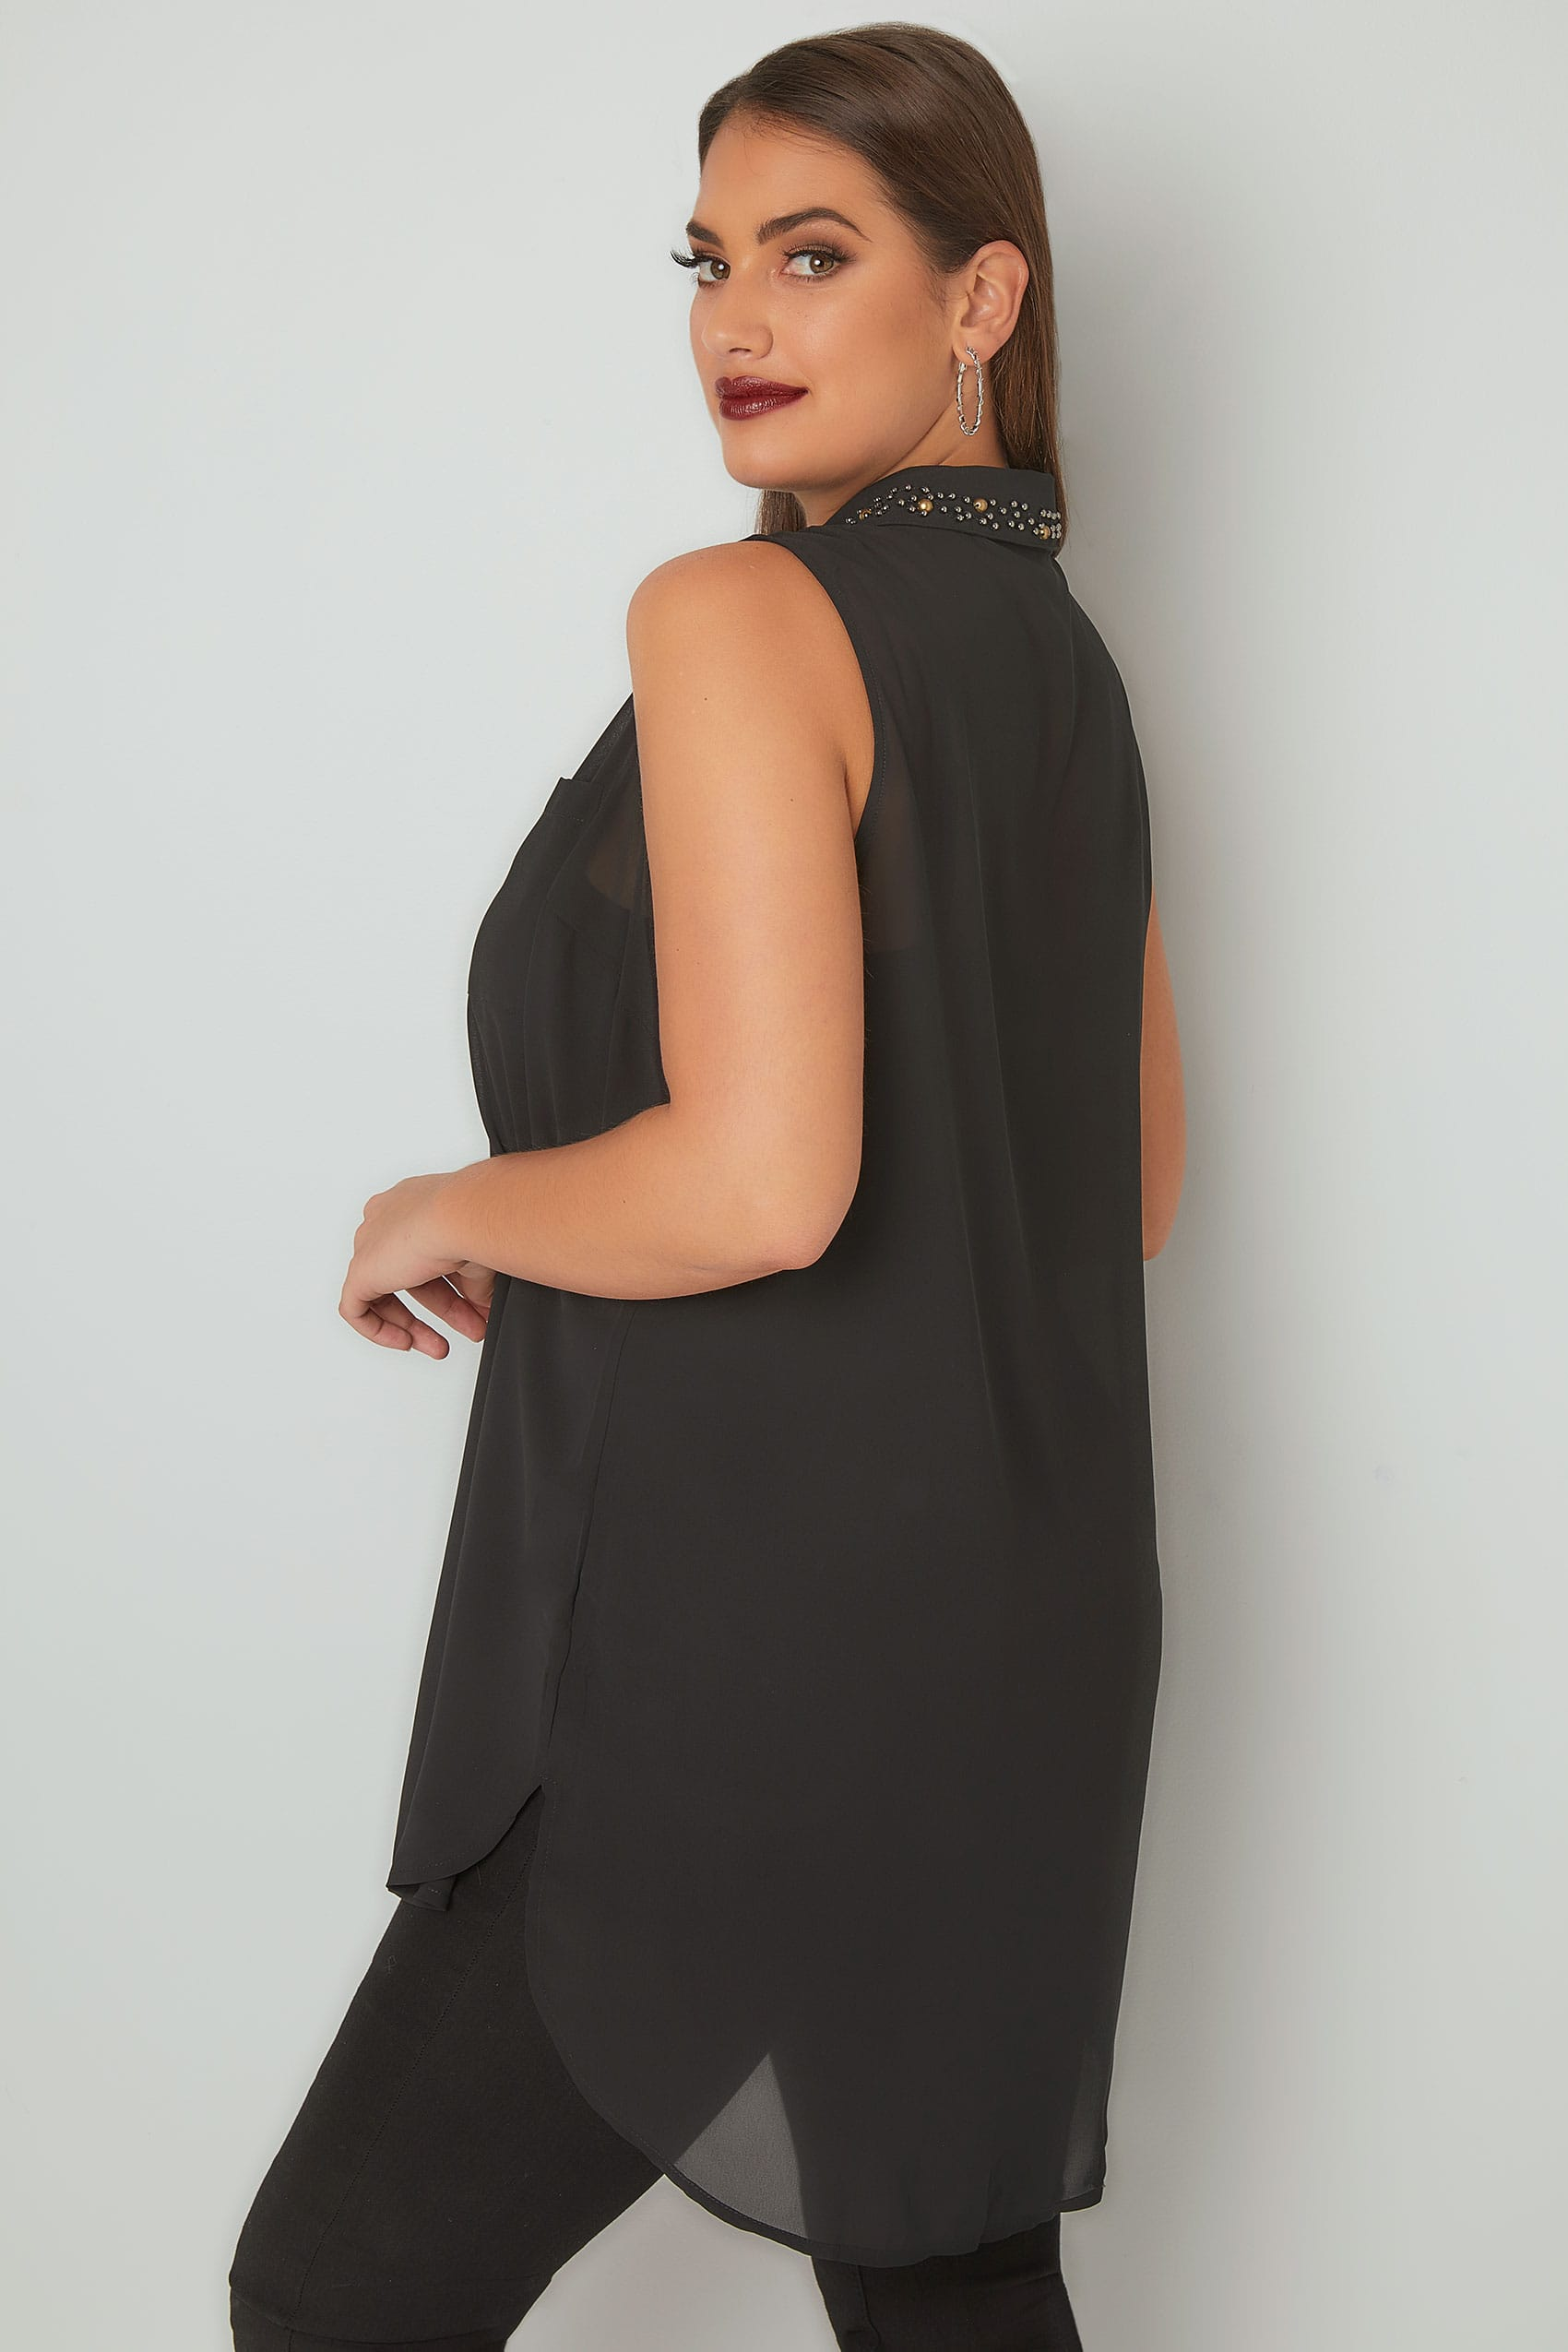 fed1831ce45 Black Sleeveless Chiffon Shirt With Embellished Collar